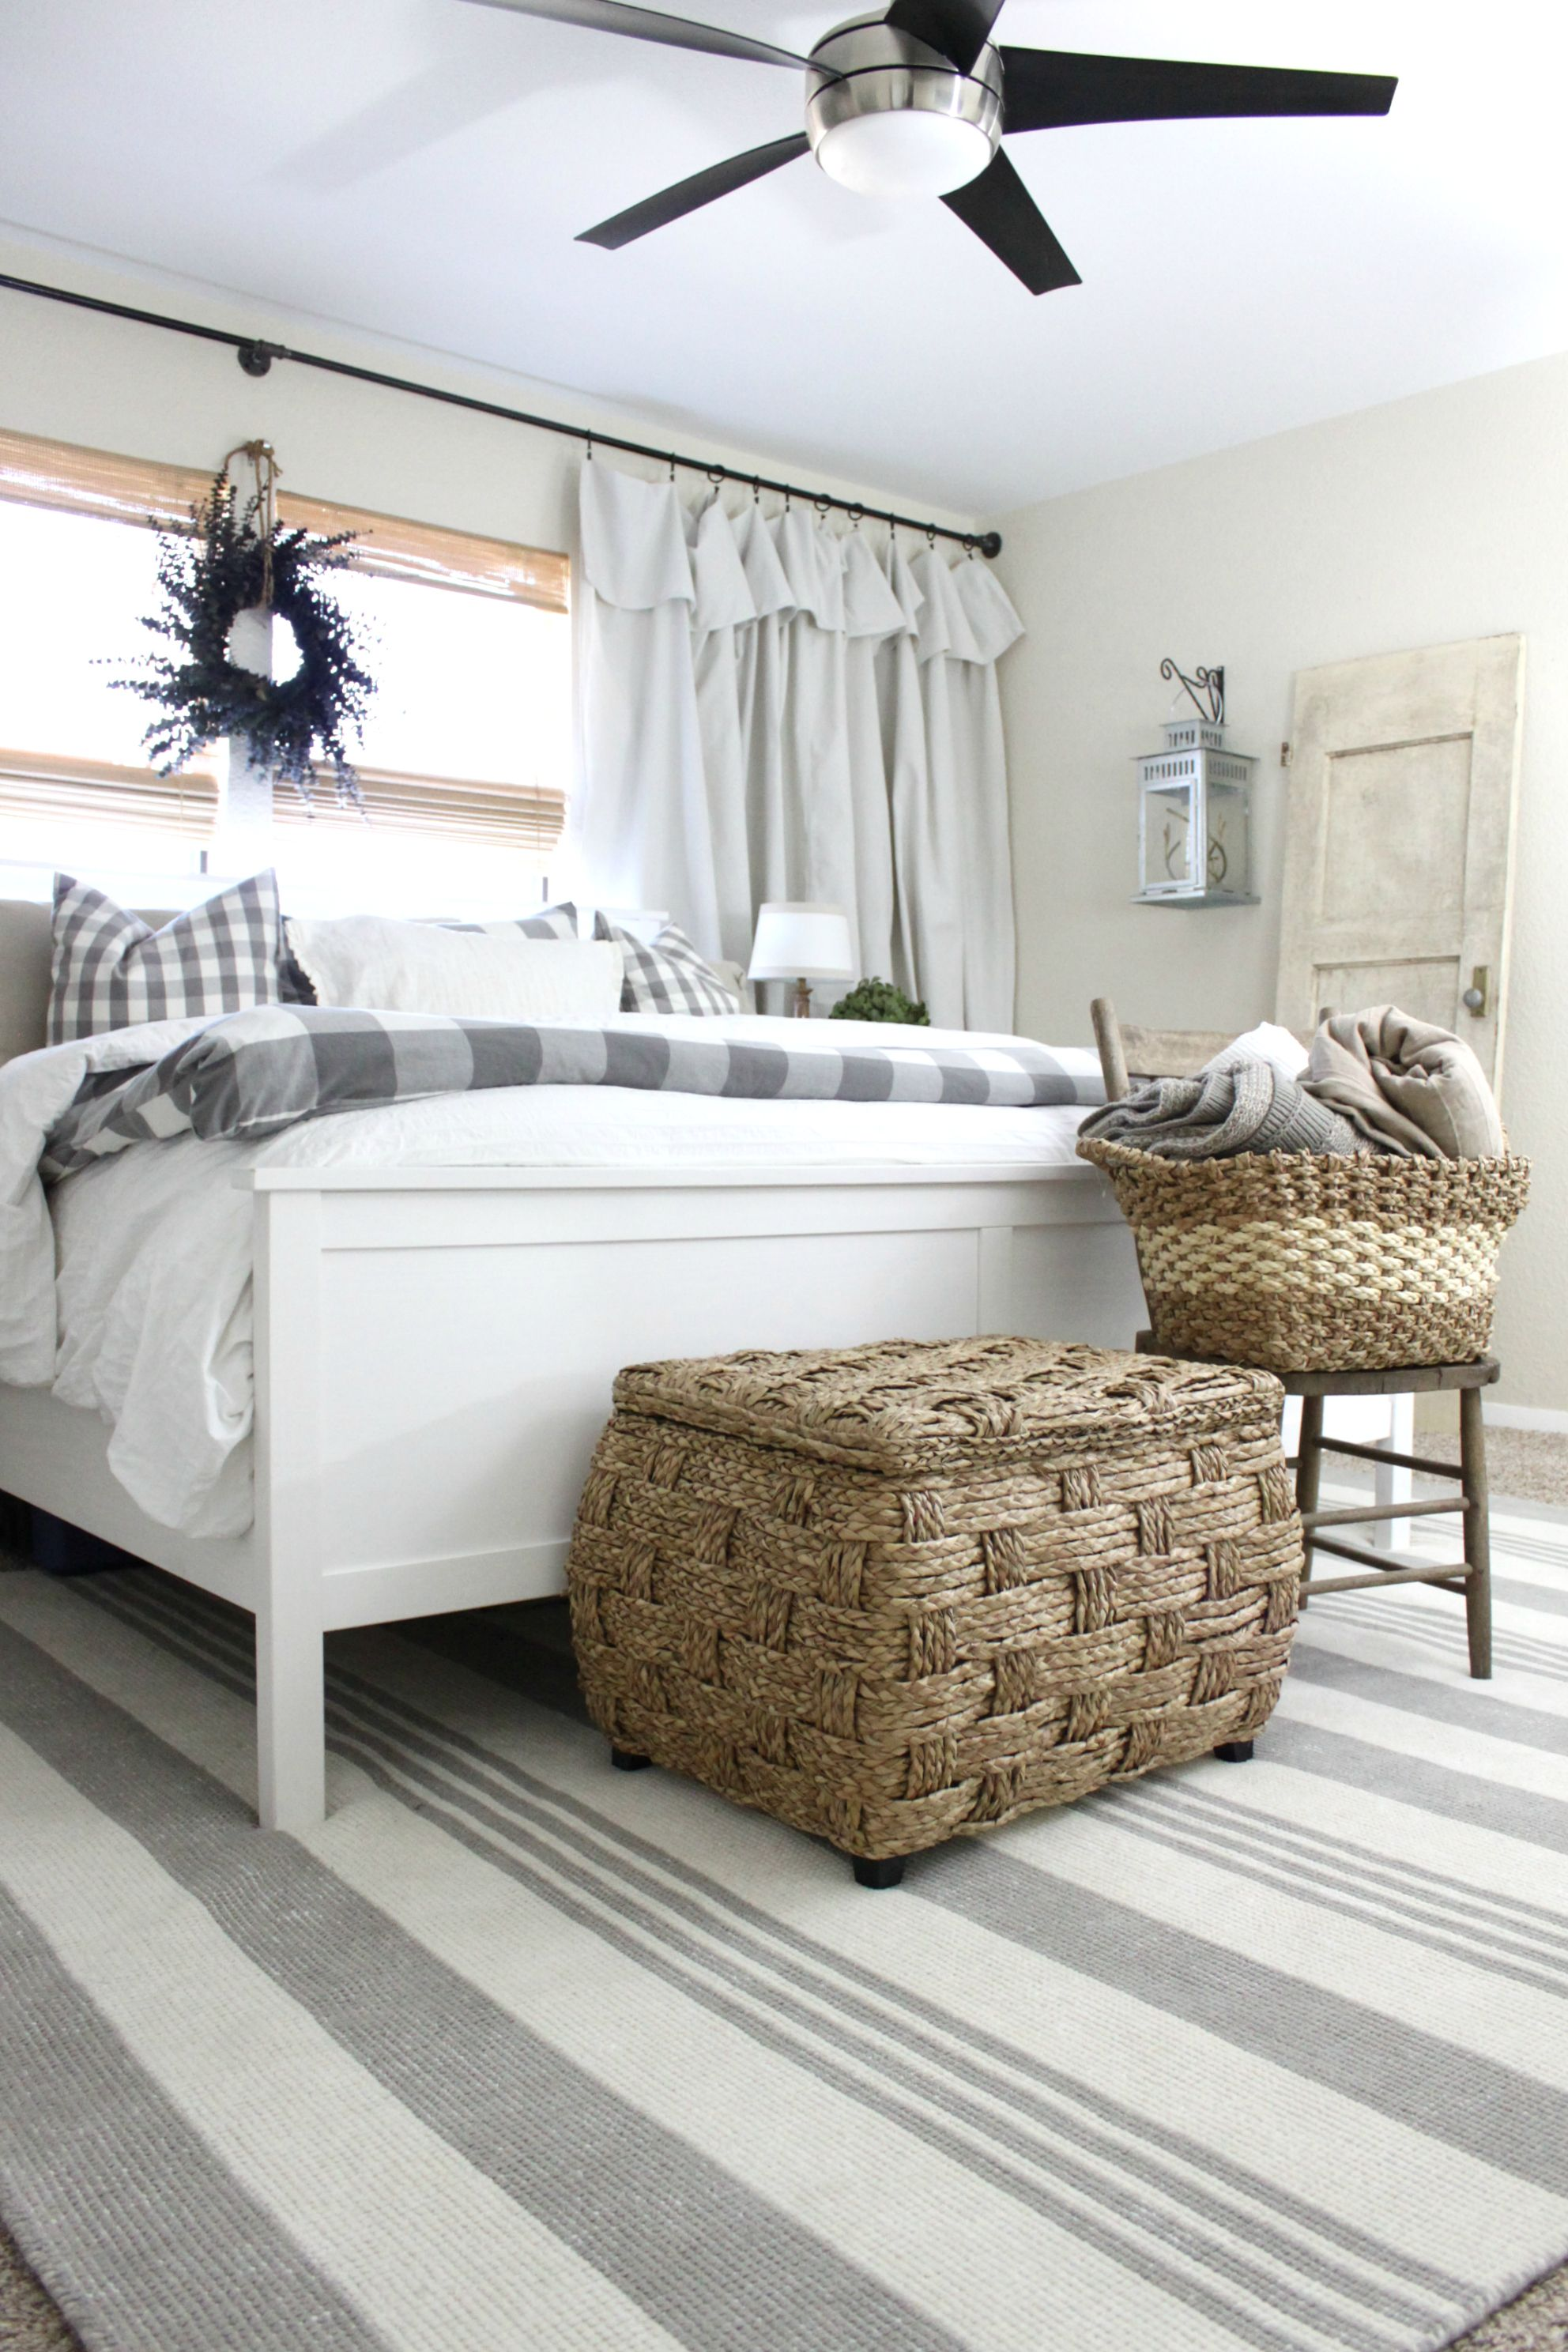 Master Bedroom Rug Makeover with Rugs USA's Epiphany EU15